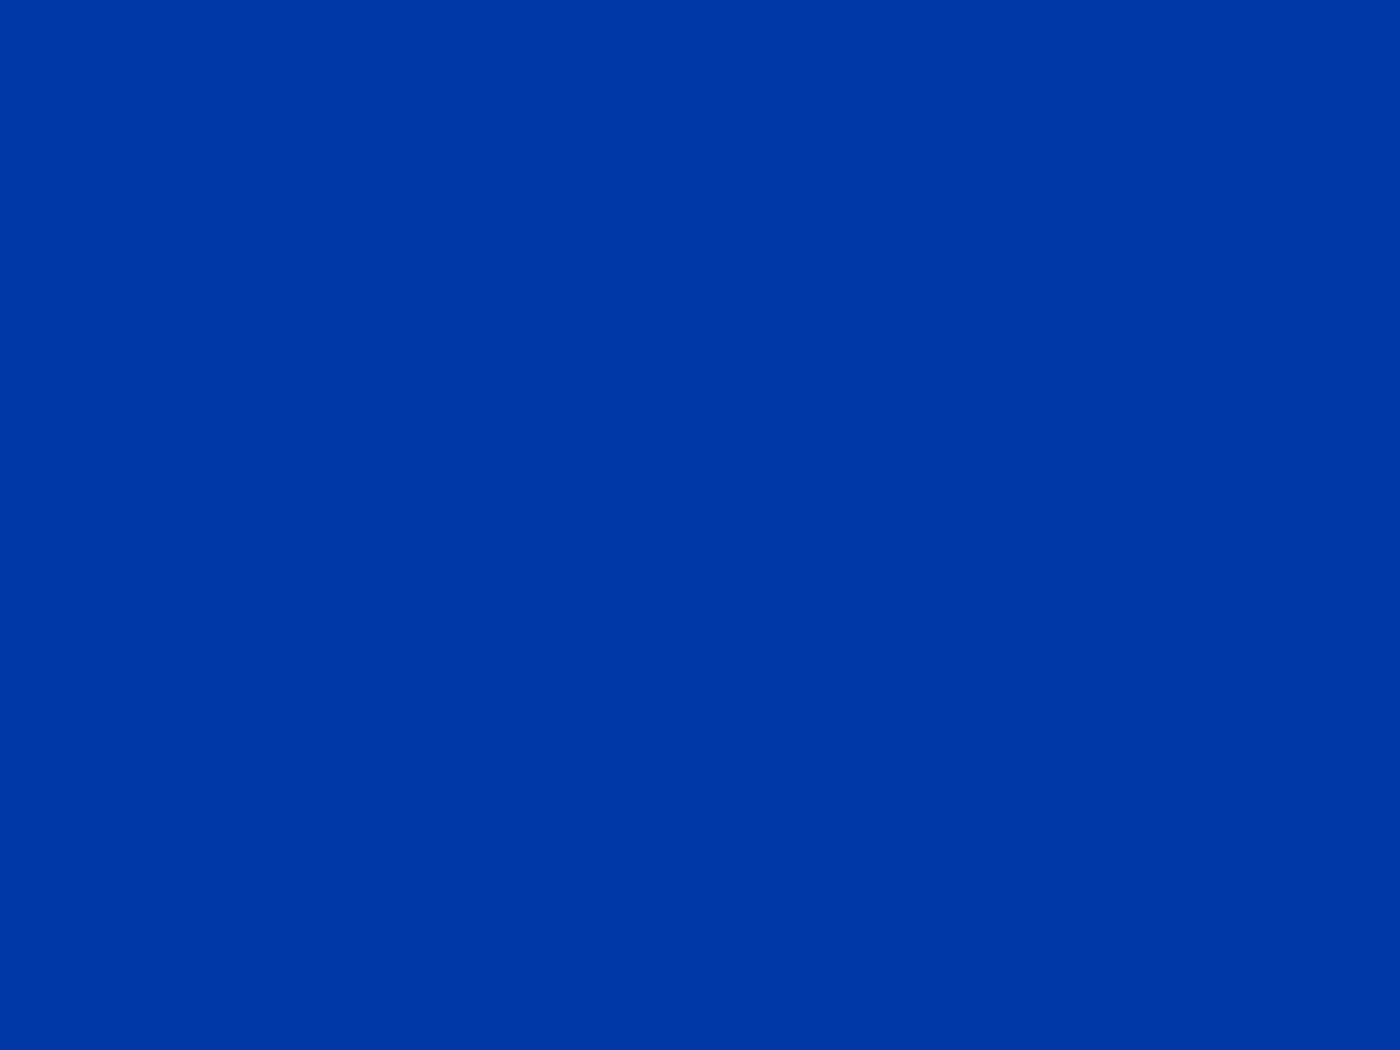 1400x1050 Royal Azure Solid Color Background